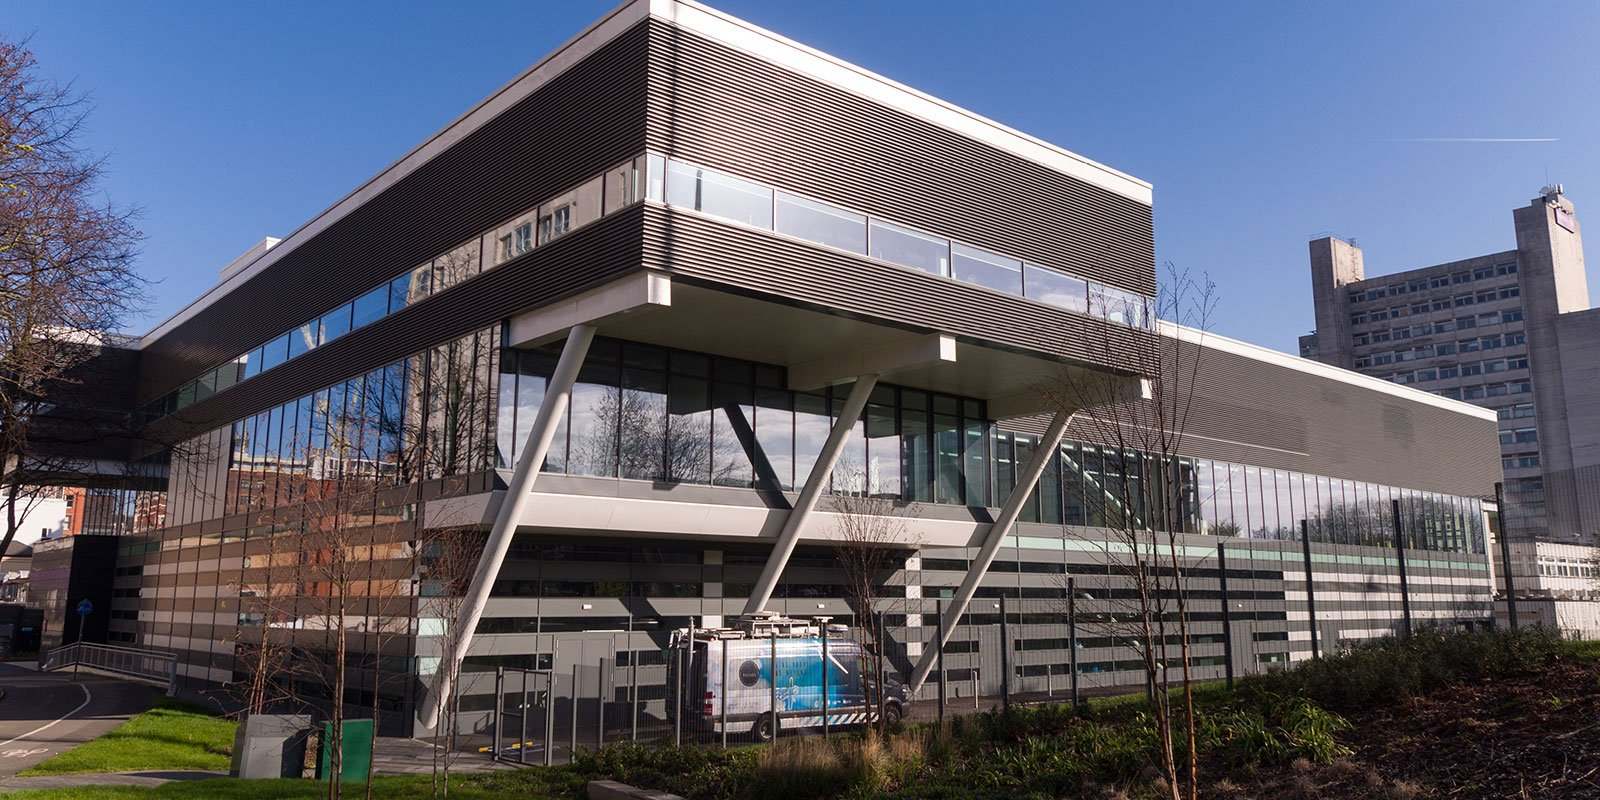 Graphene Engineering Innovation Centre (GEIC) Manchester